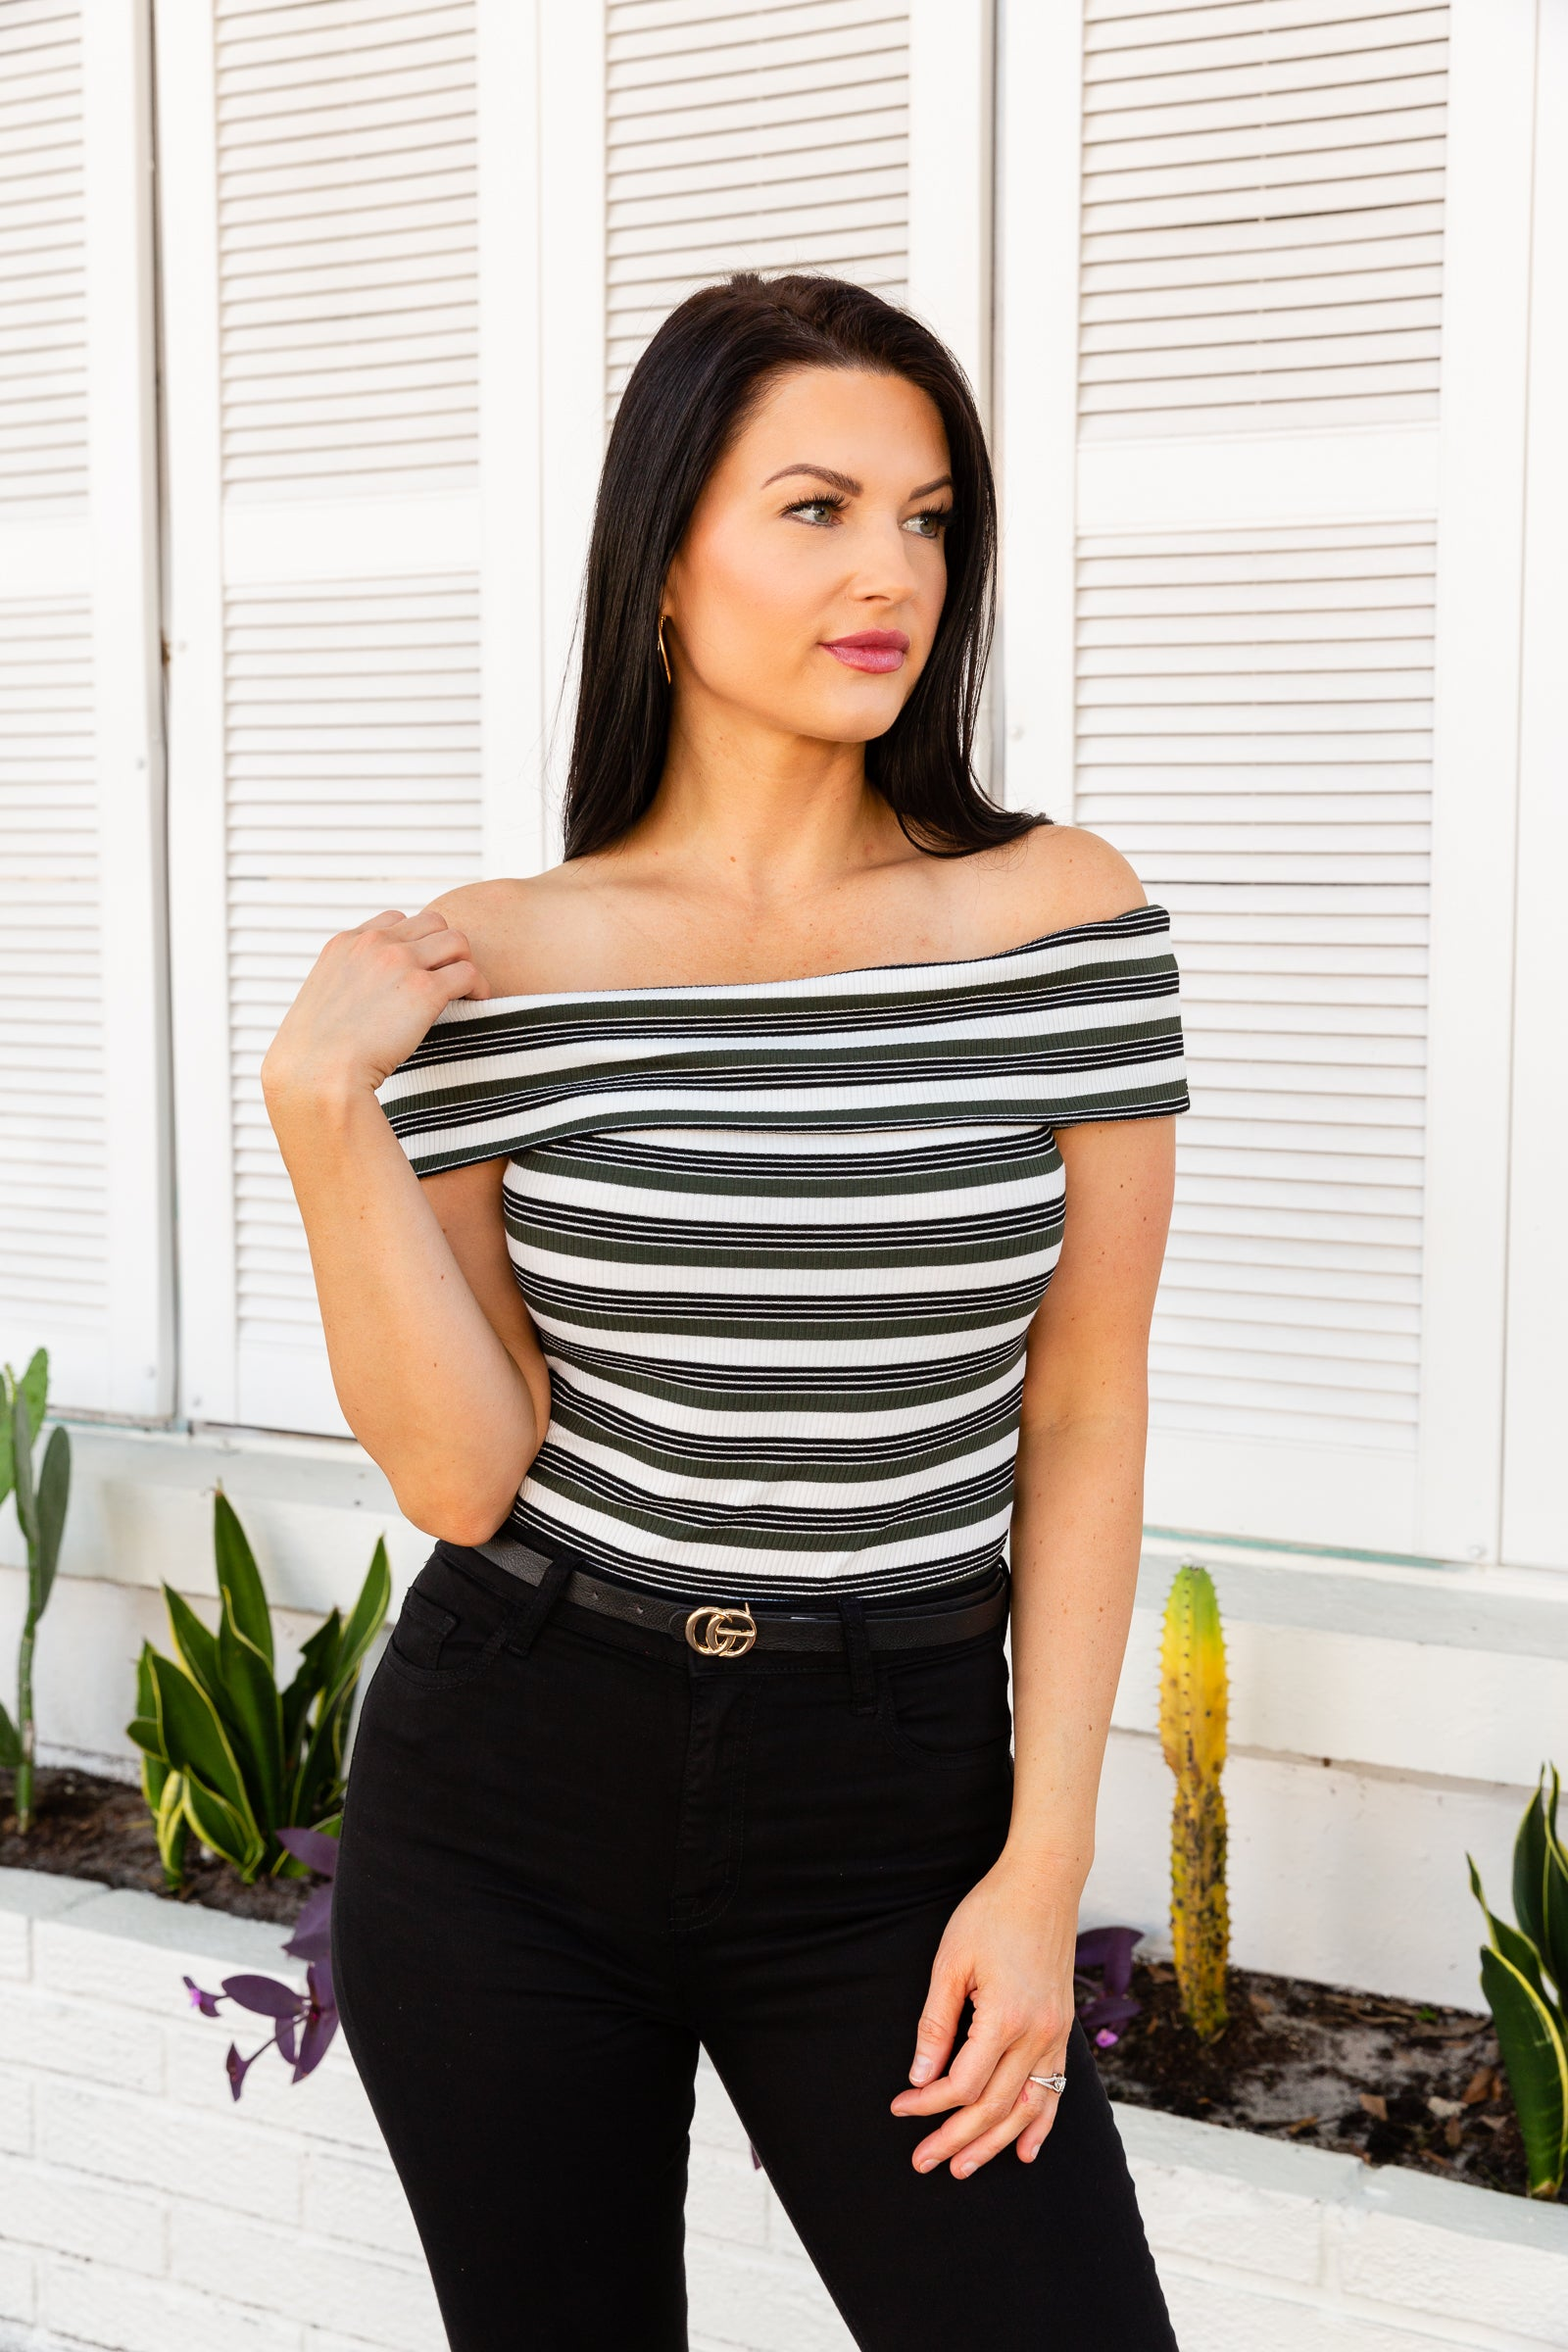 Black and olive striped bodysuit has an off-the-shoulder and straight neckline that flows into a fitted bodice and meets cheeky briefs. Features button closures on the inseam.